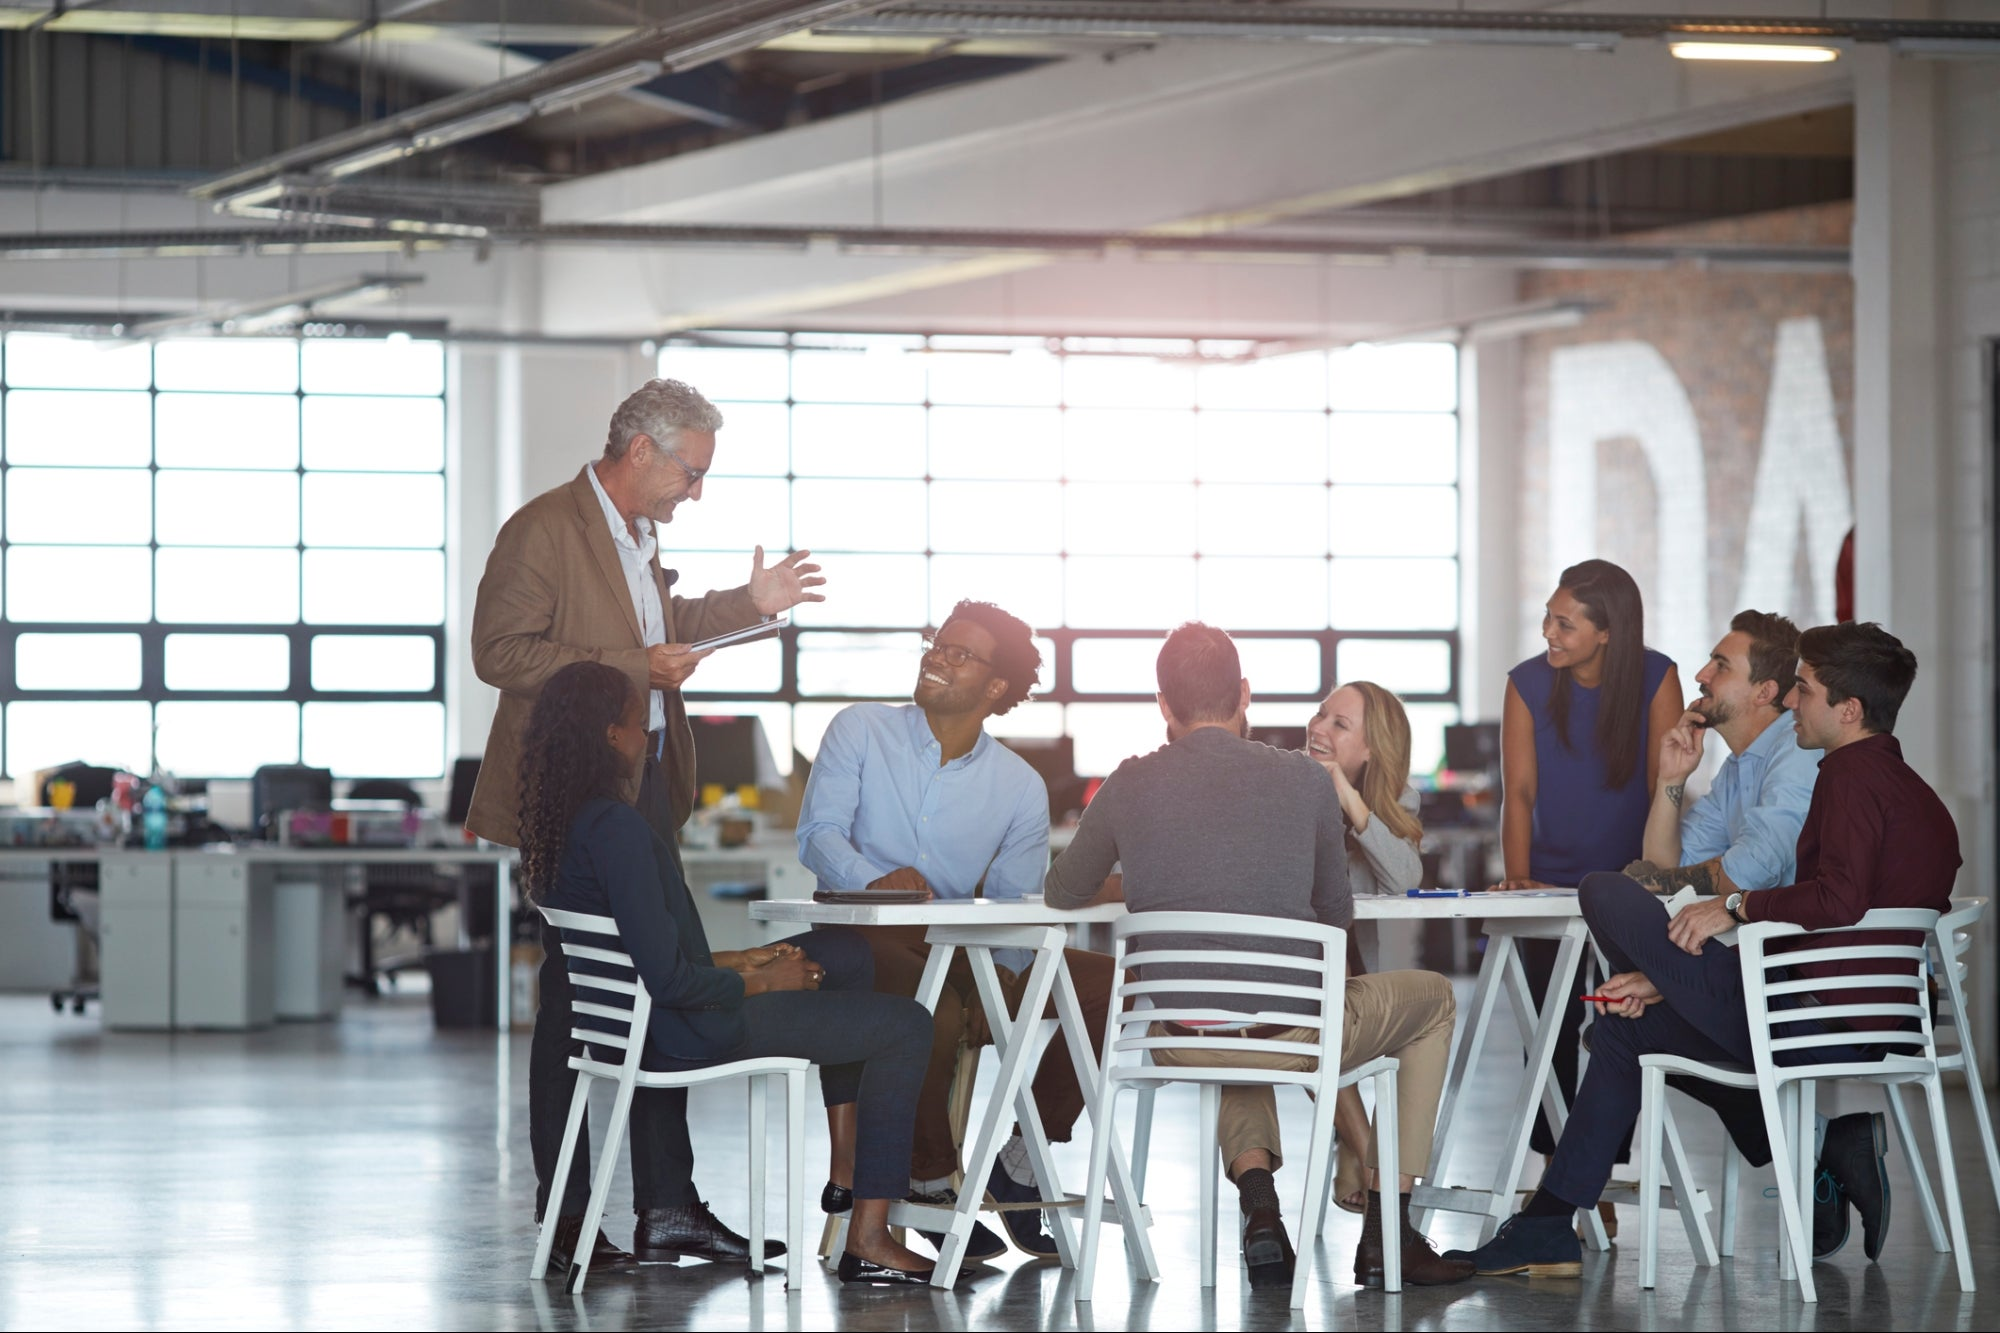 8 Soft Skills That Make You an Even Better Leader